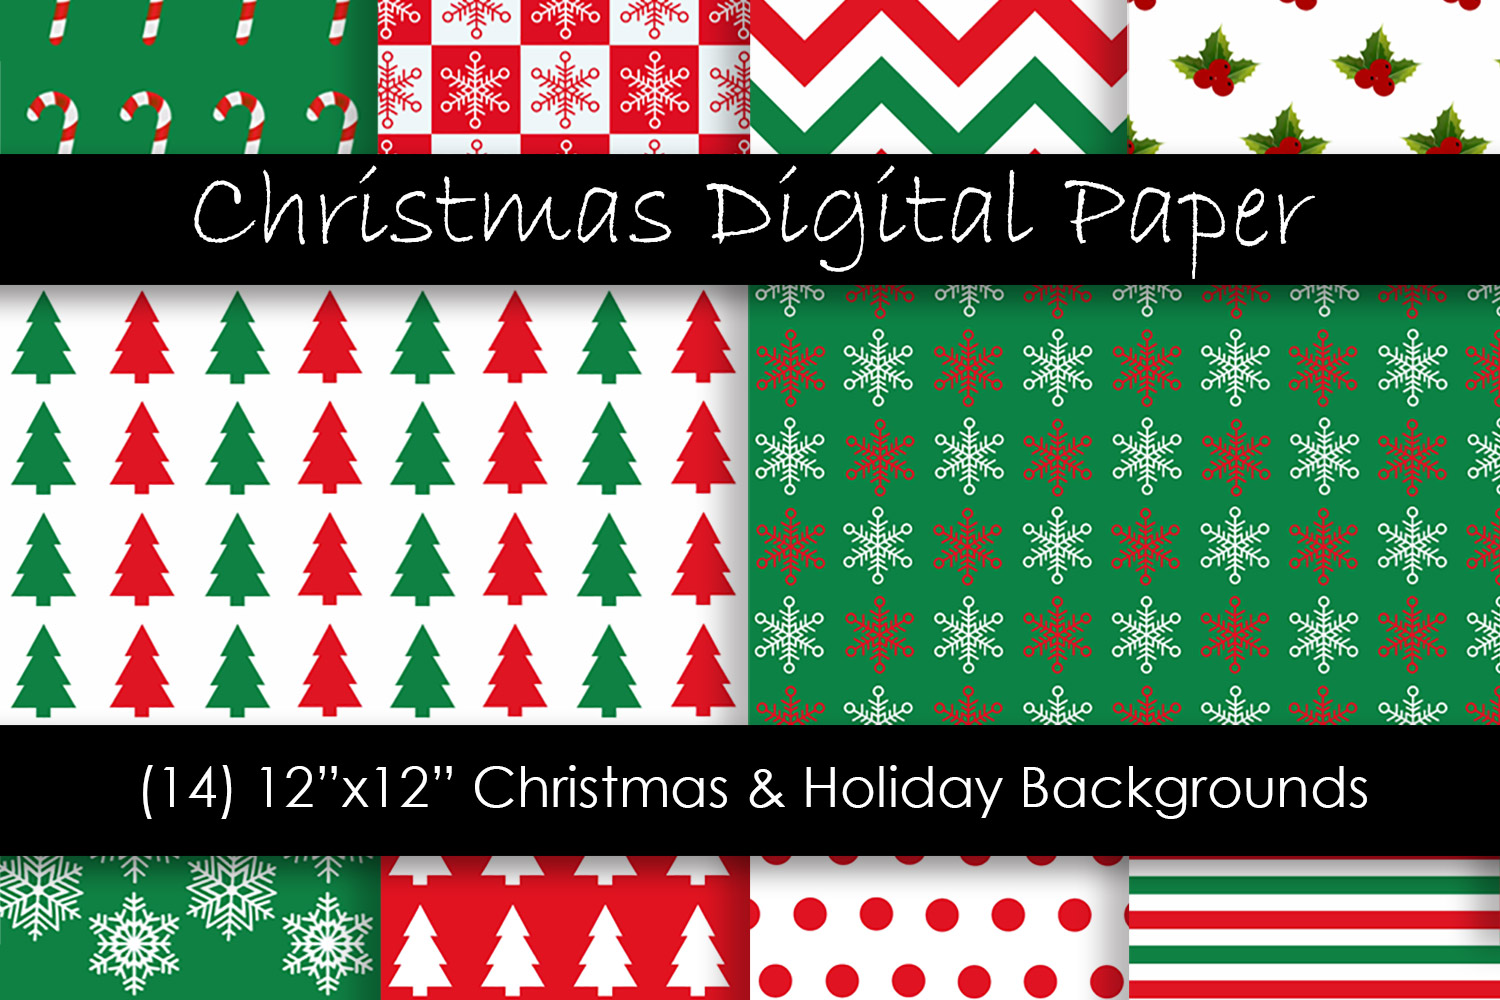 Christmas & Holiday Backgrounds - Red and Green Patterns example image 1